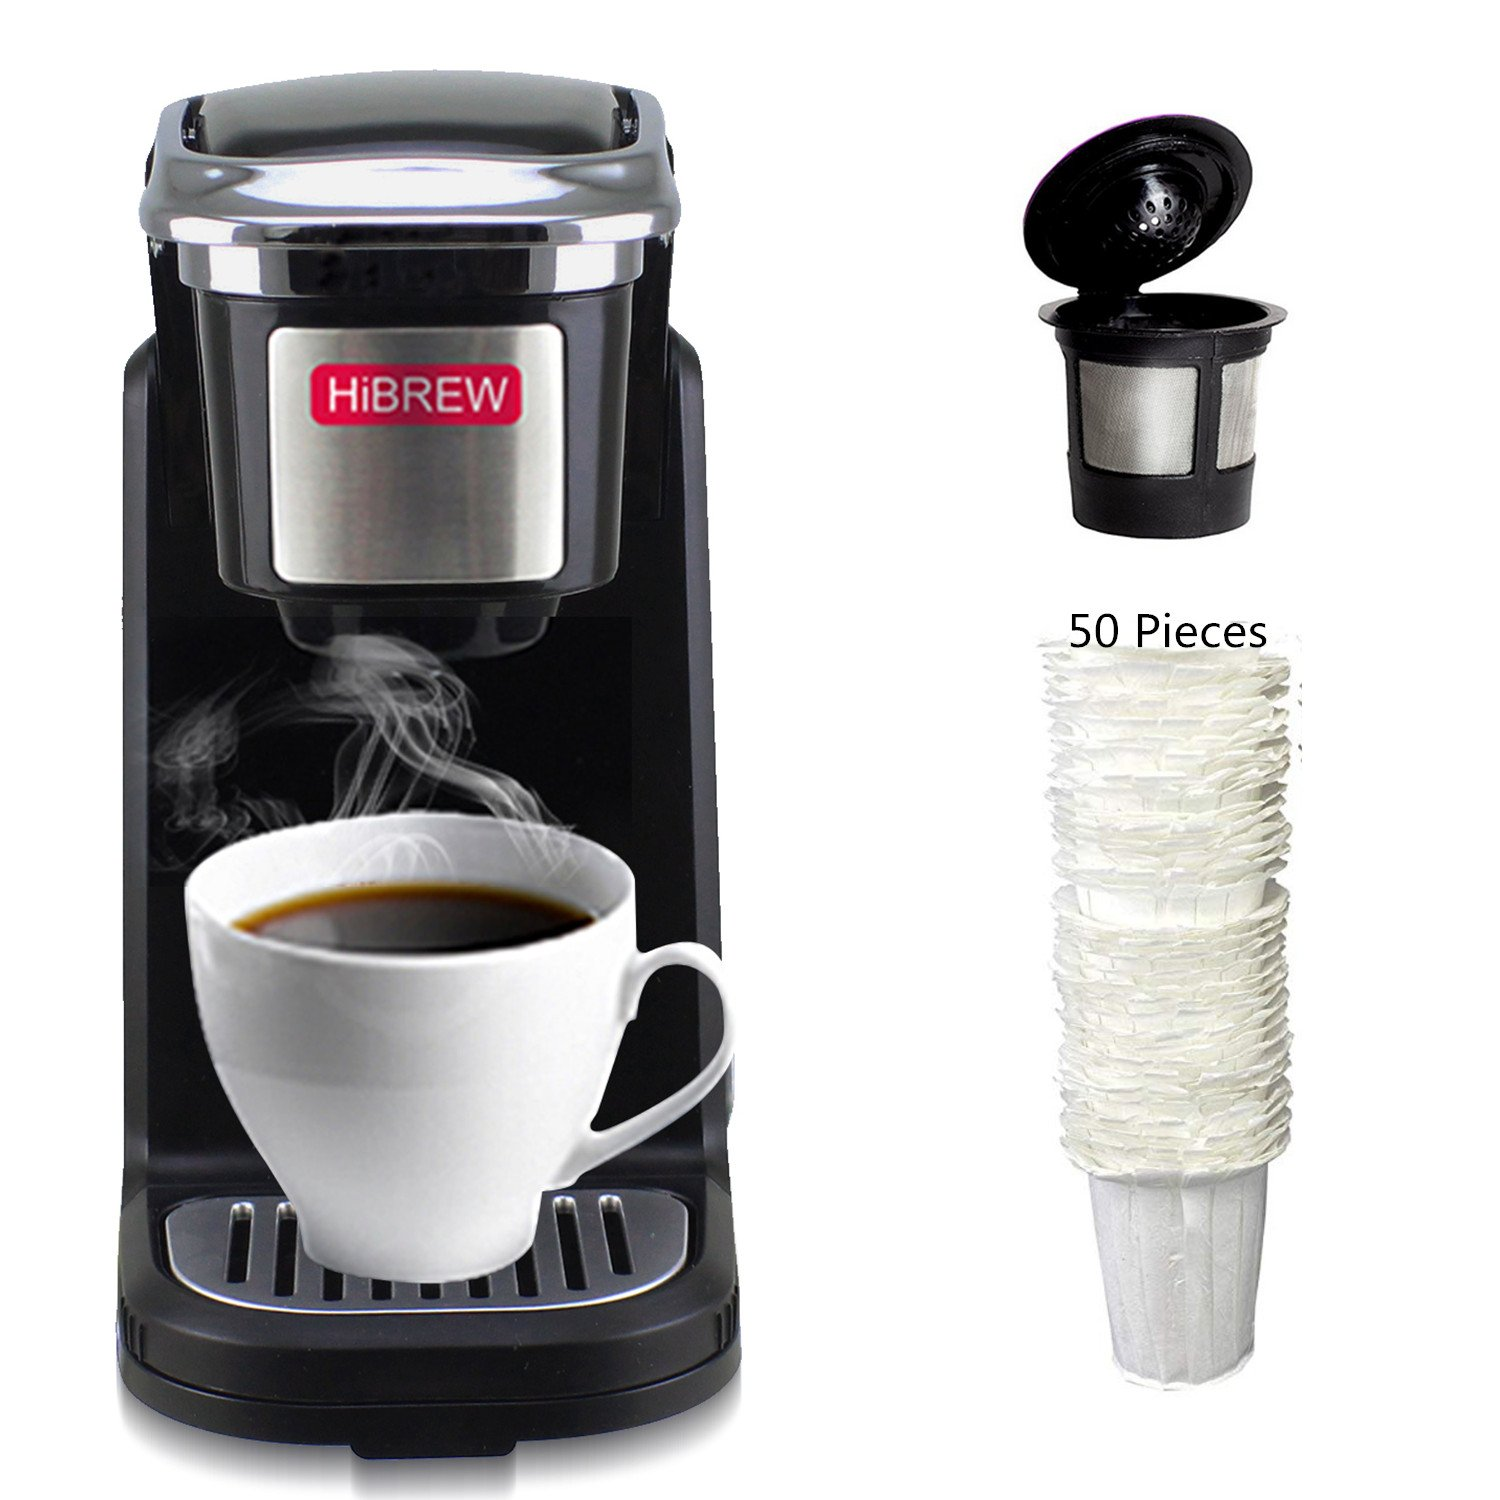 HiBREW Black Single Serve Compact K Cup Coffee Maker for Travel Camping Compatible with K Cup and Ground Coffee (including Reusable K Cup and 50 Disposable Filters)